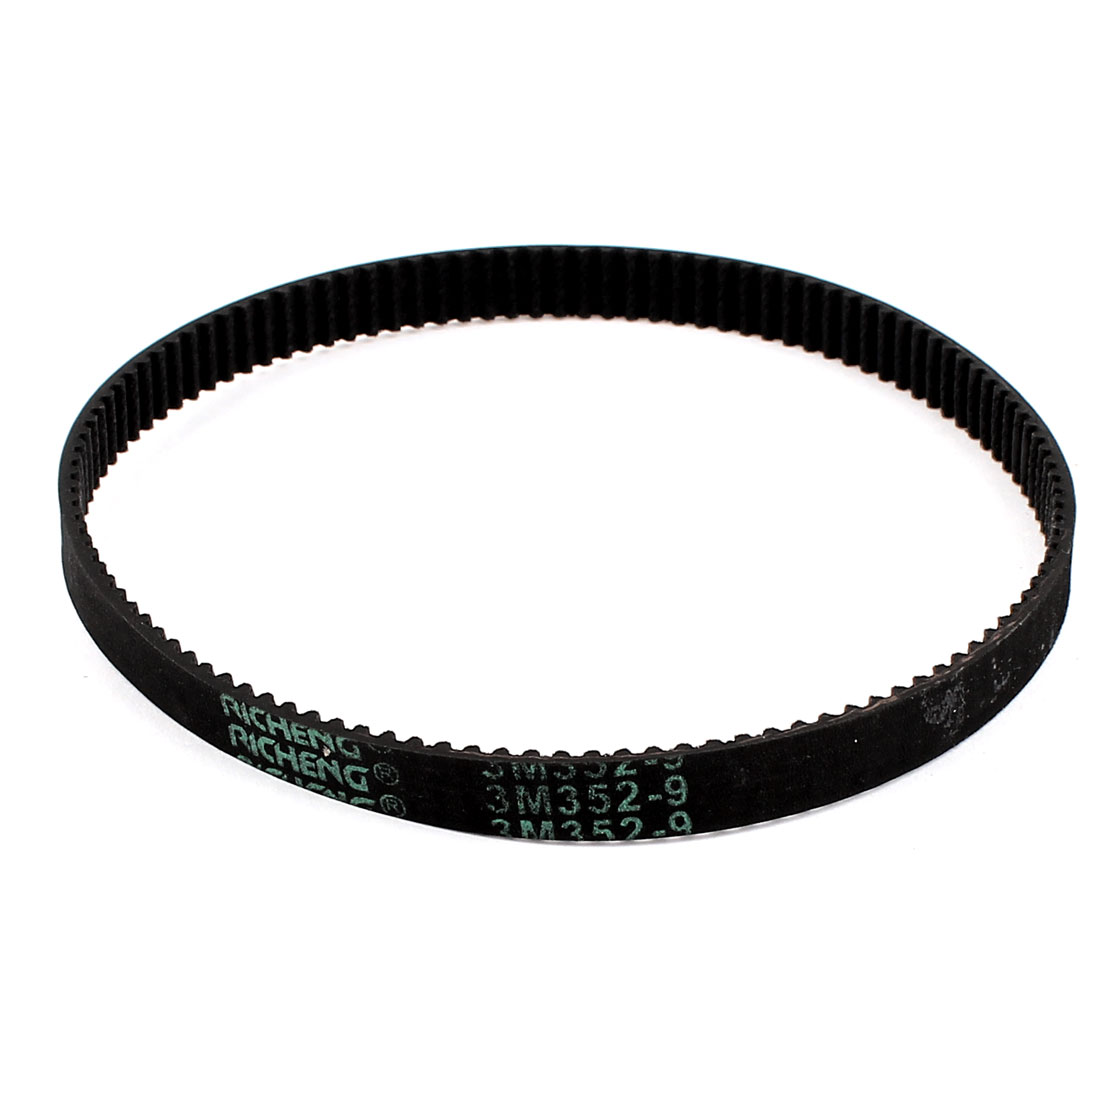 CNC 352mm Pitch Length 117 Teeth 9mm Width Industrial Timing Belt 3M-352-9